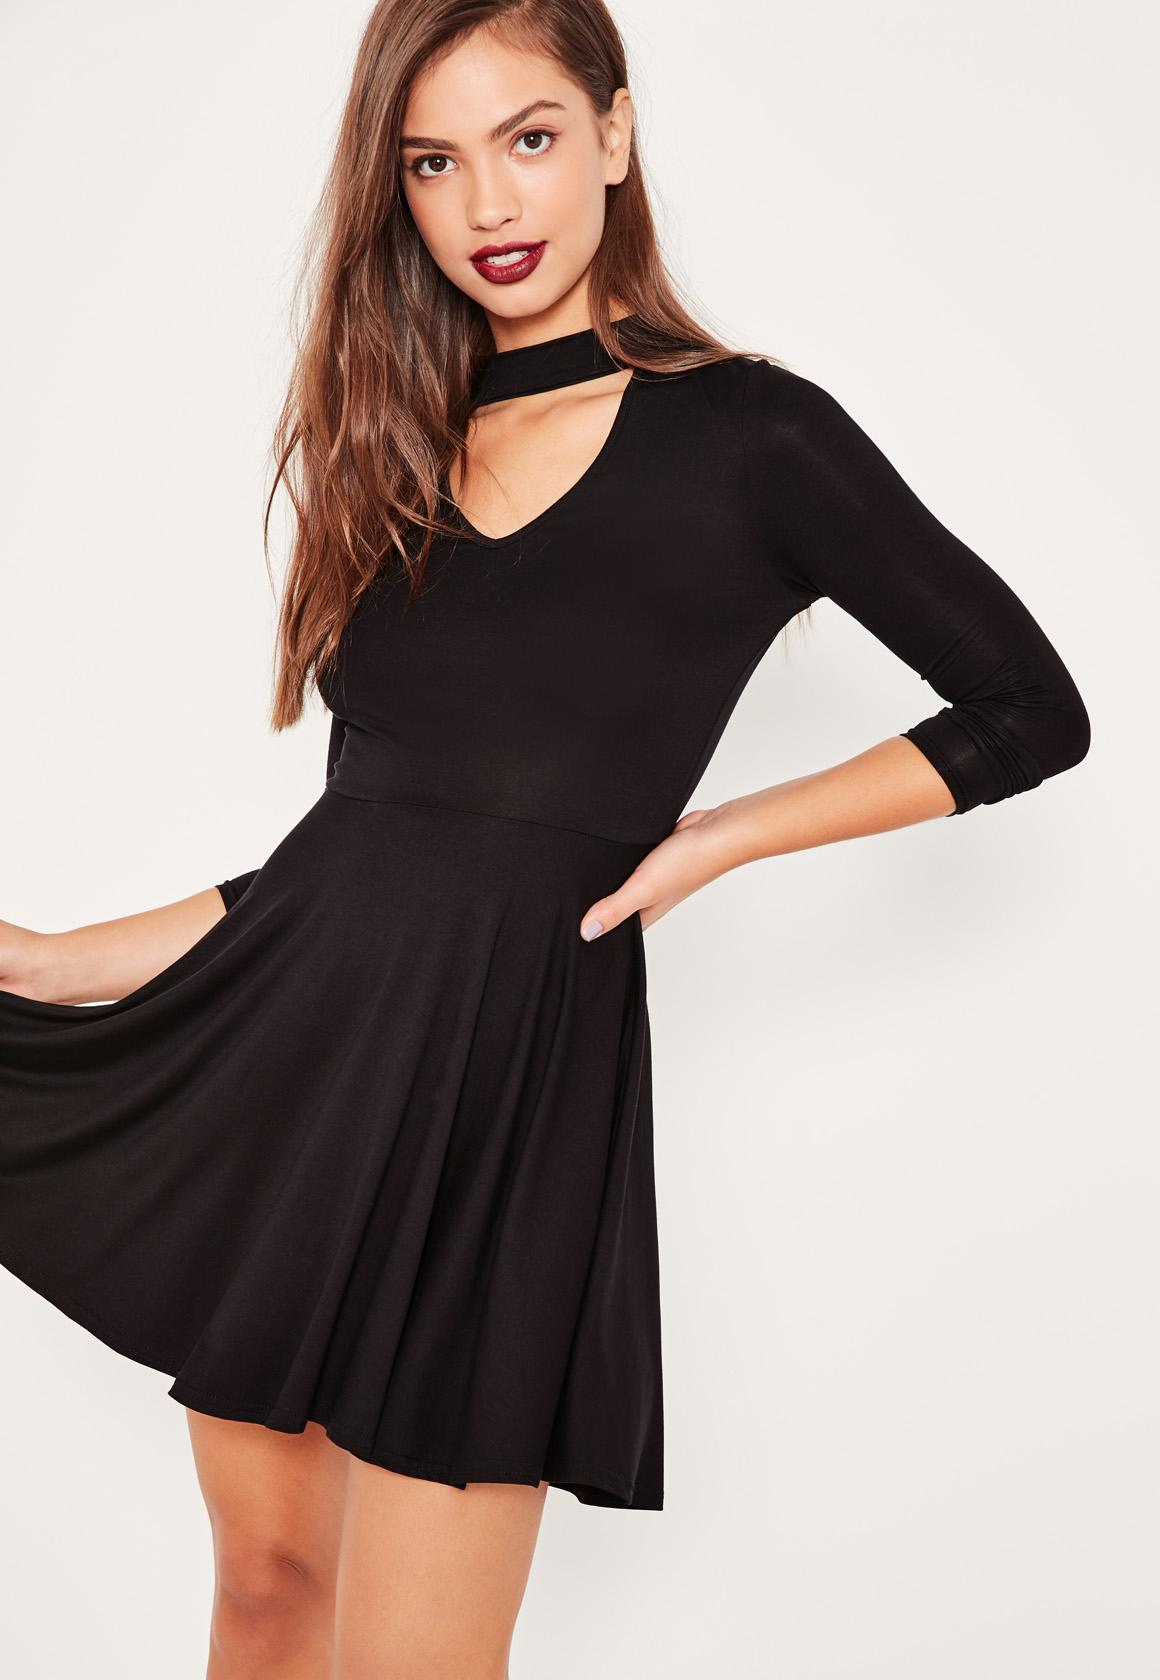 Black dress skater - Black Choker Neck Skater Dress